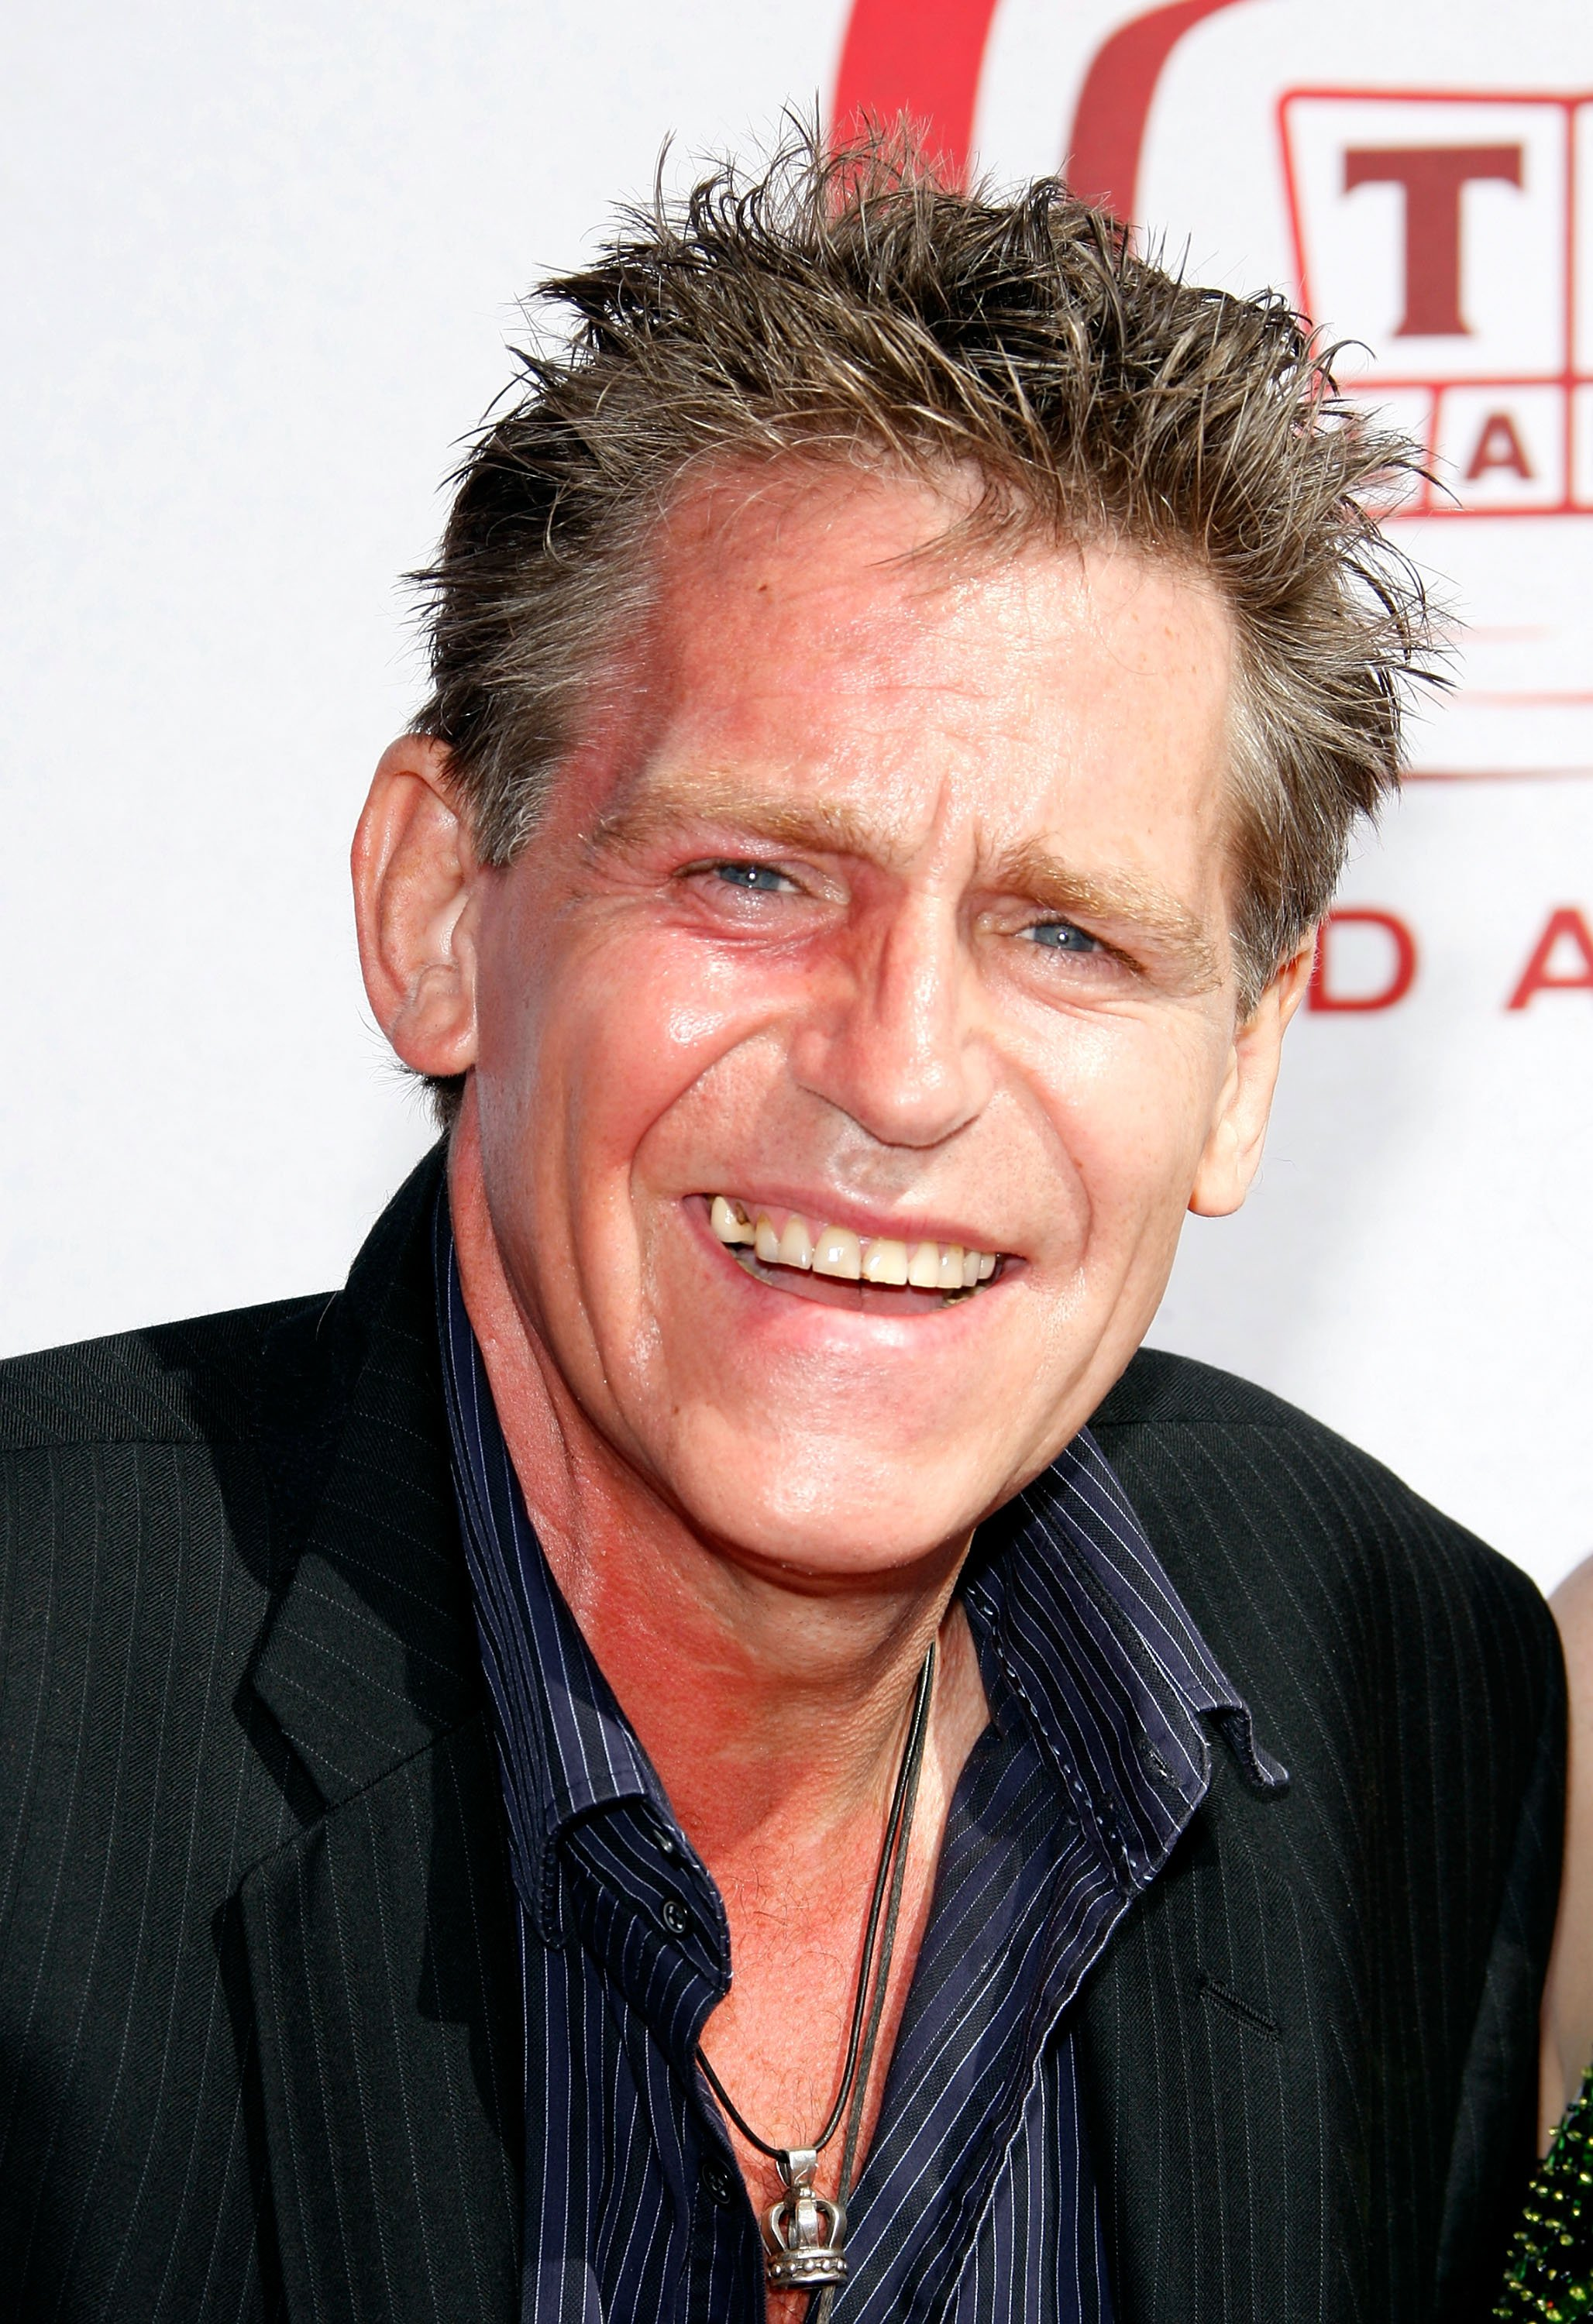 """Jeff Conaway arrives at the 6th annual """"TV Land Awards"""" held at Barker Hanger on June 8, 2008 in Santa Monica, California 